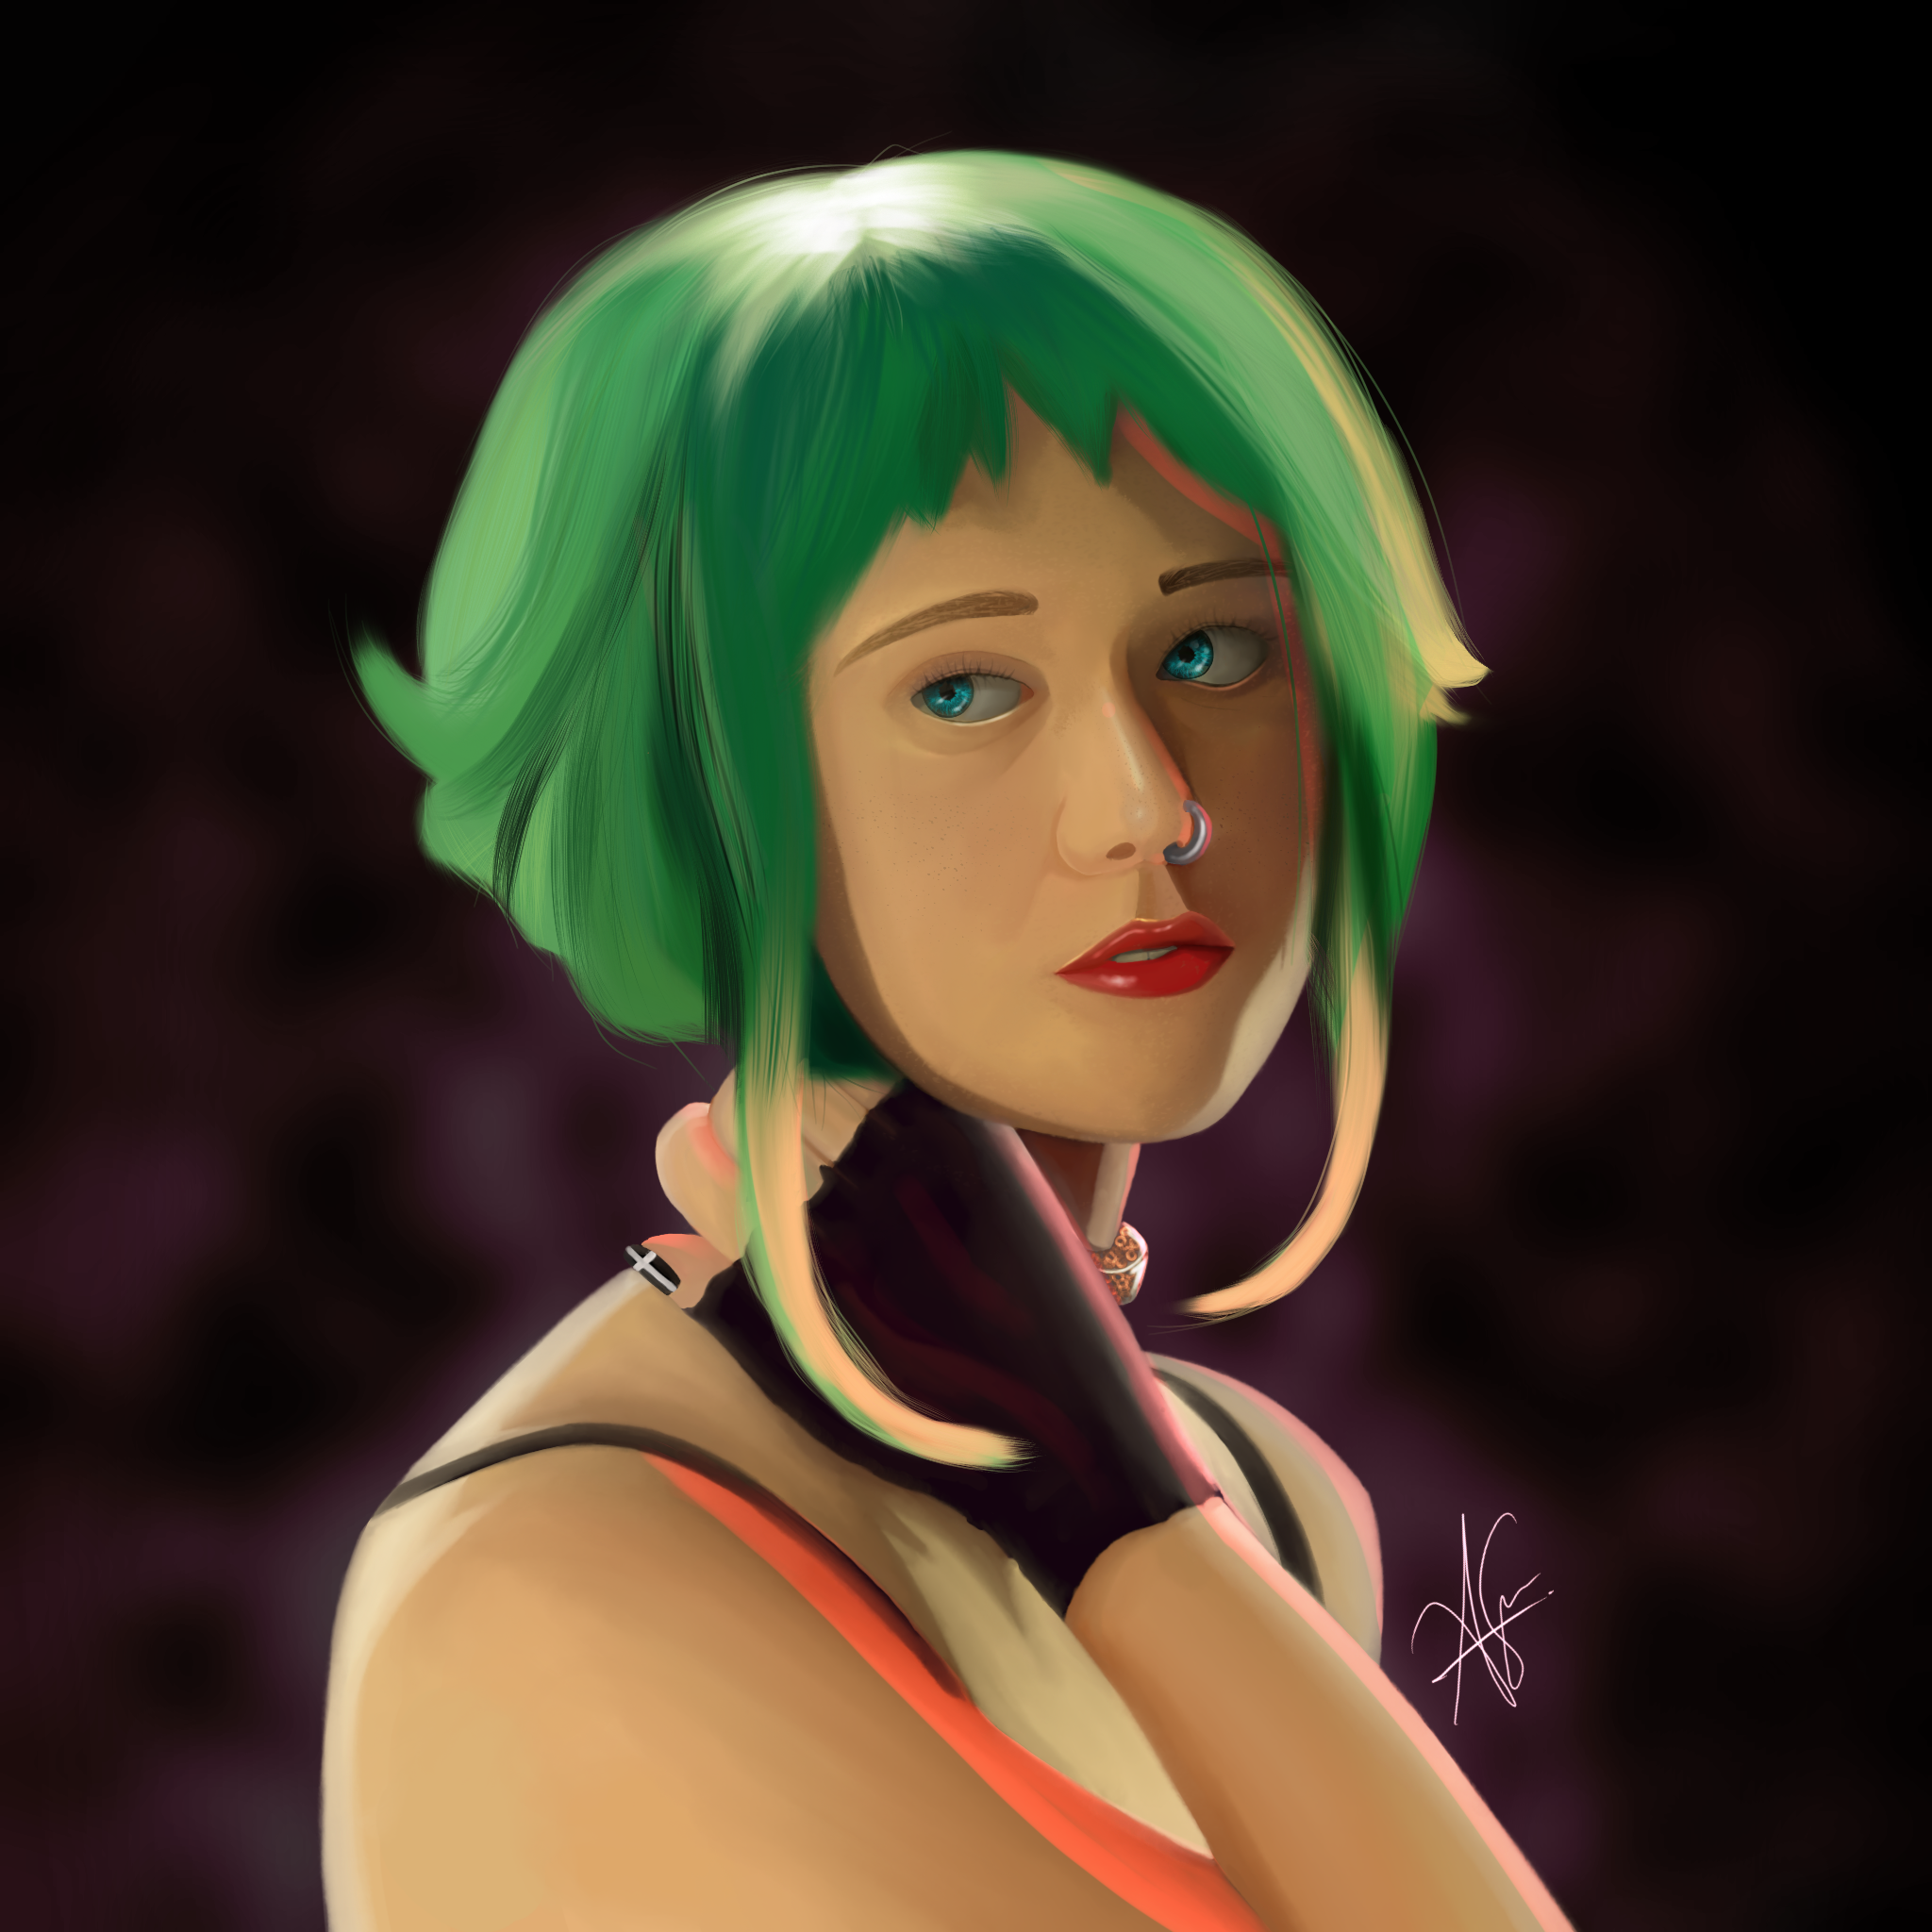 A Painting of a Ramona with green hair. A girl from the movie Scott vs the world.